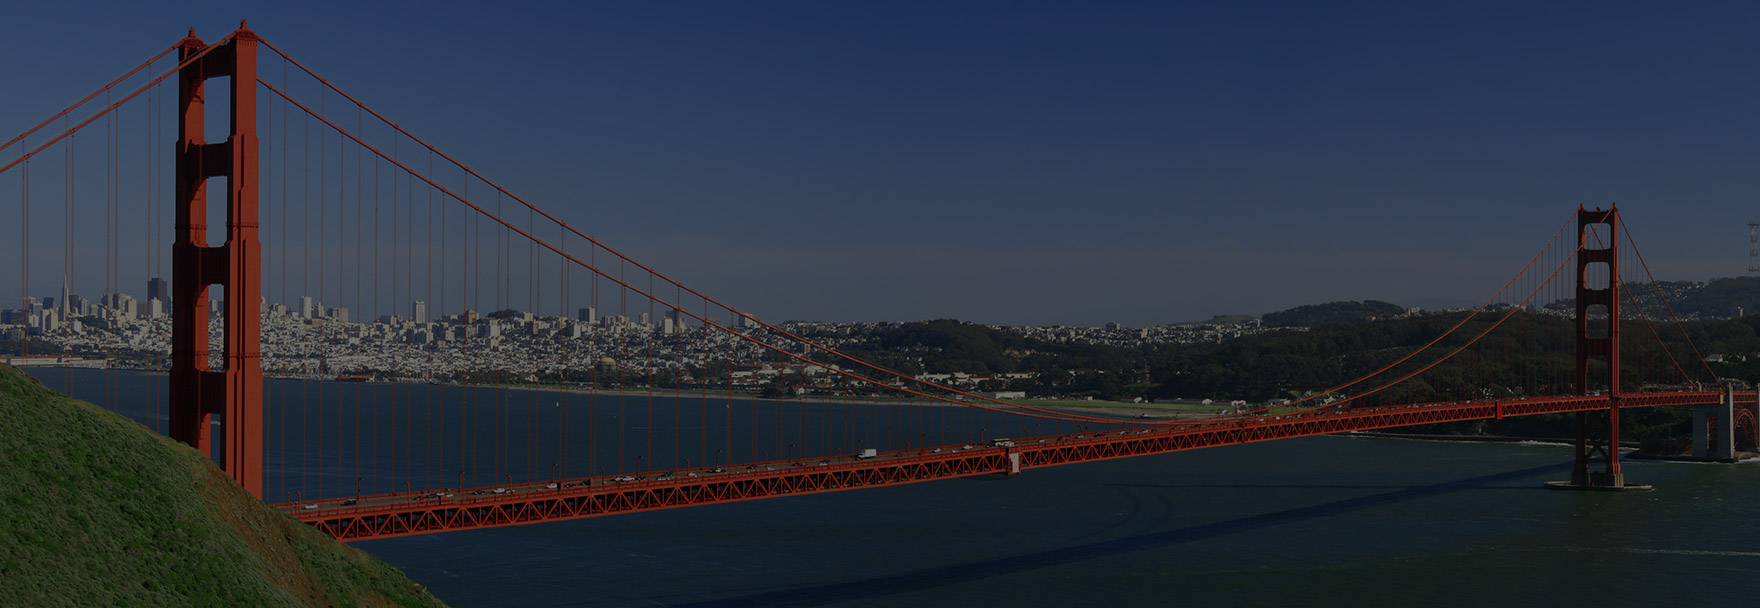 San Francisco Vacation Packages SFO Southwest Vacations - San francisco vacations